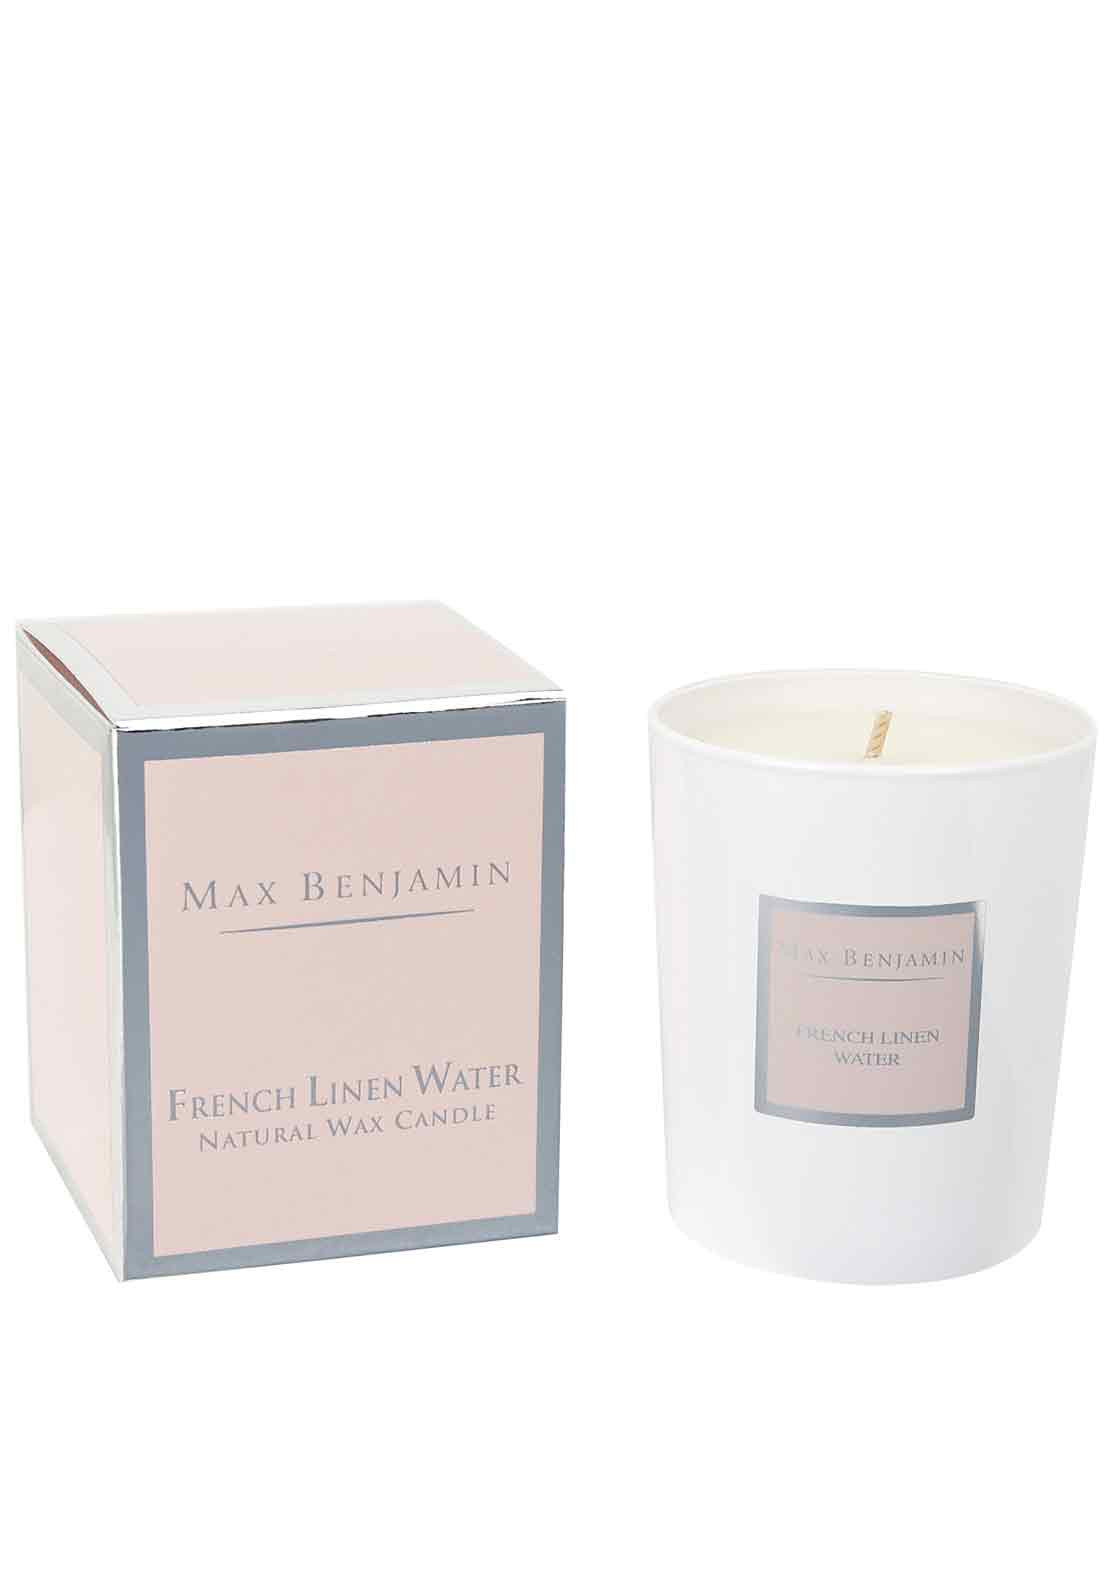 Max Benjamin French Linen Water Scented Candle